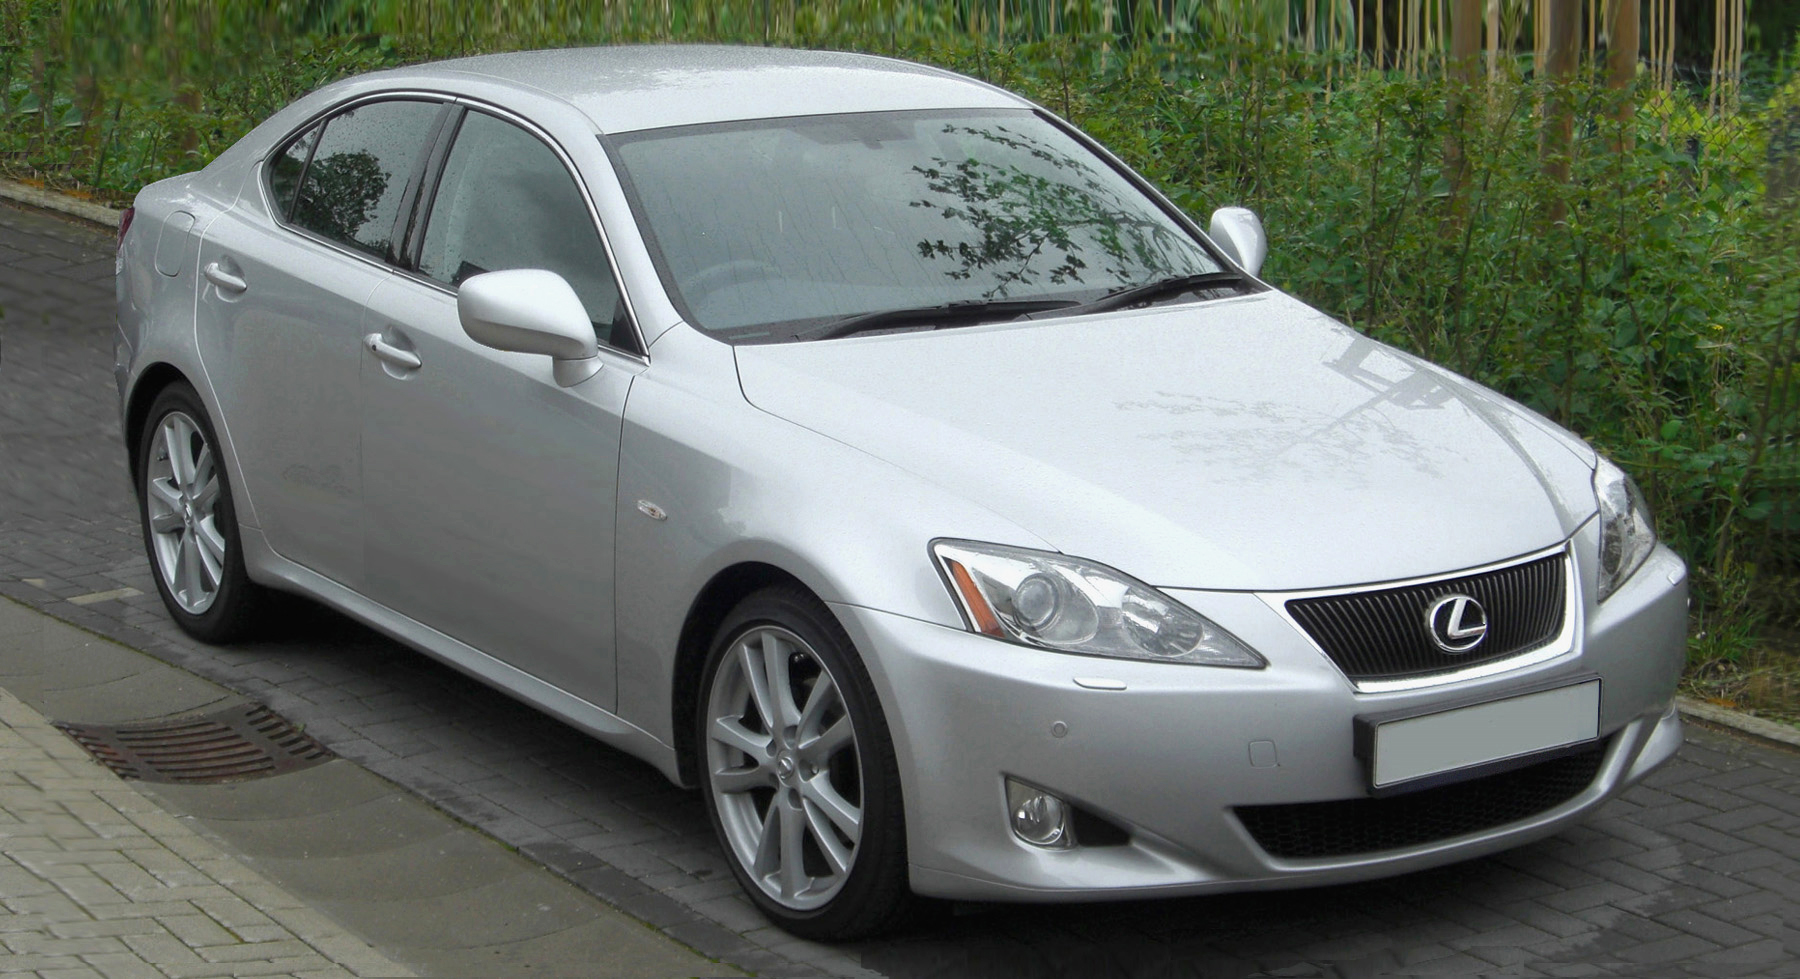 2005 Lexus IS, second generation with F marque variant in 2007